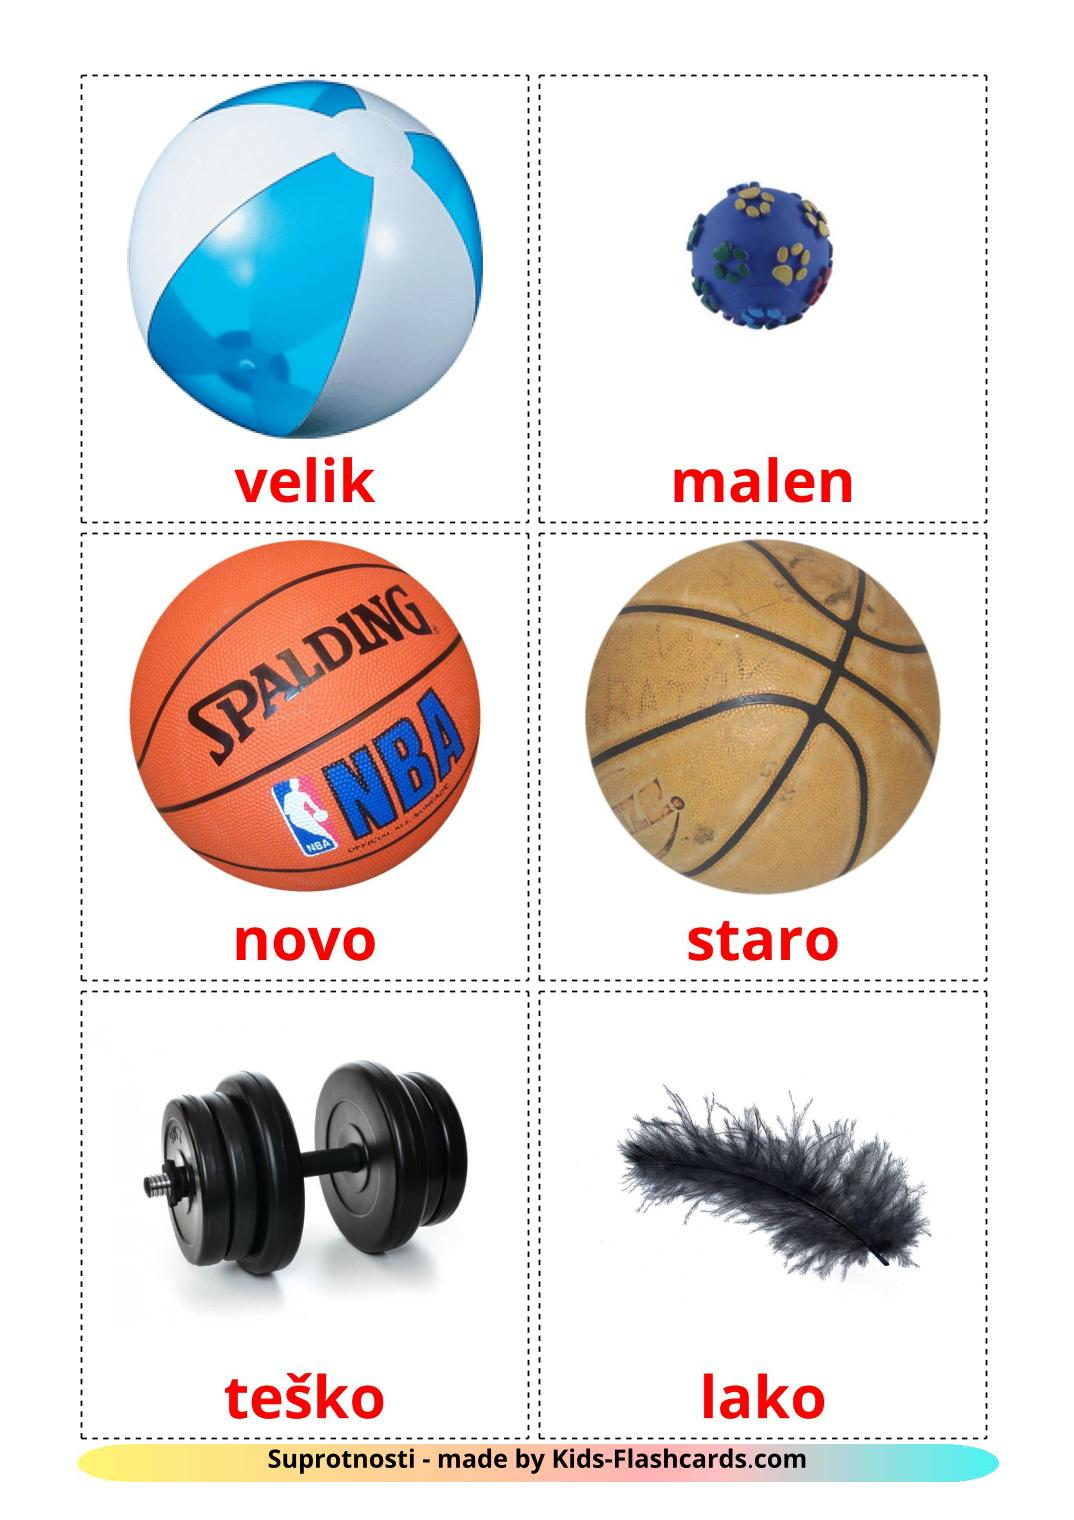 Opposites - 74 Free Printable croatian Flashcards